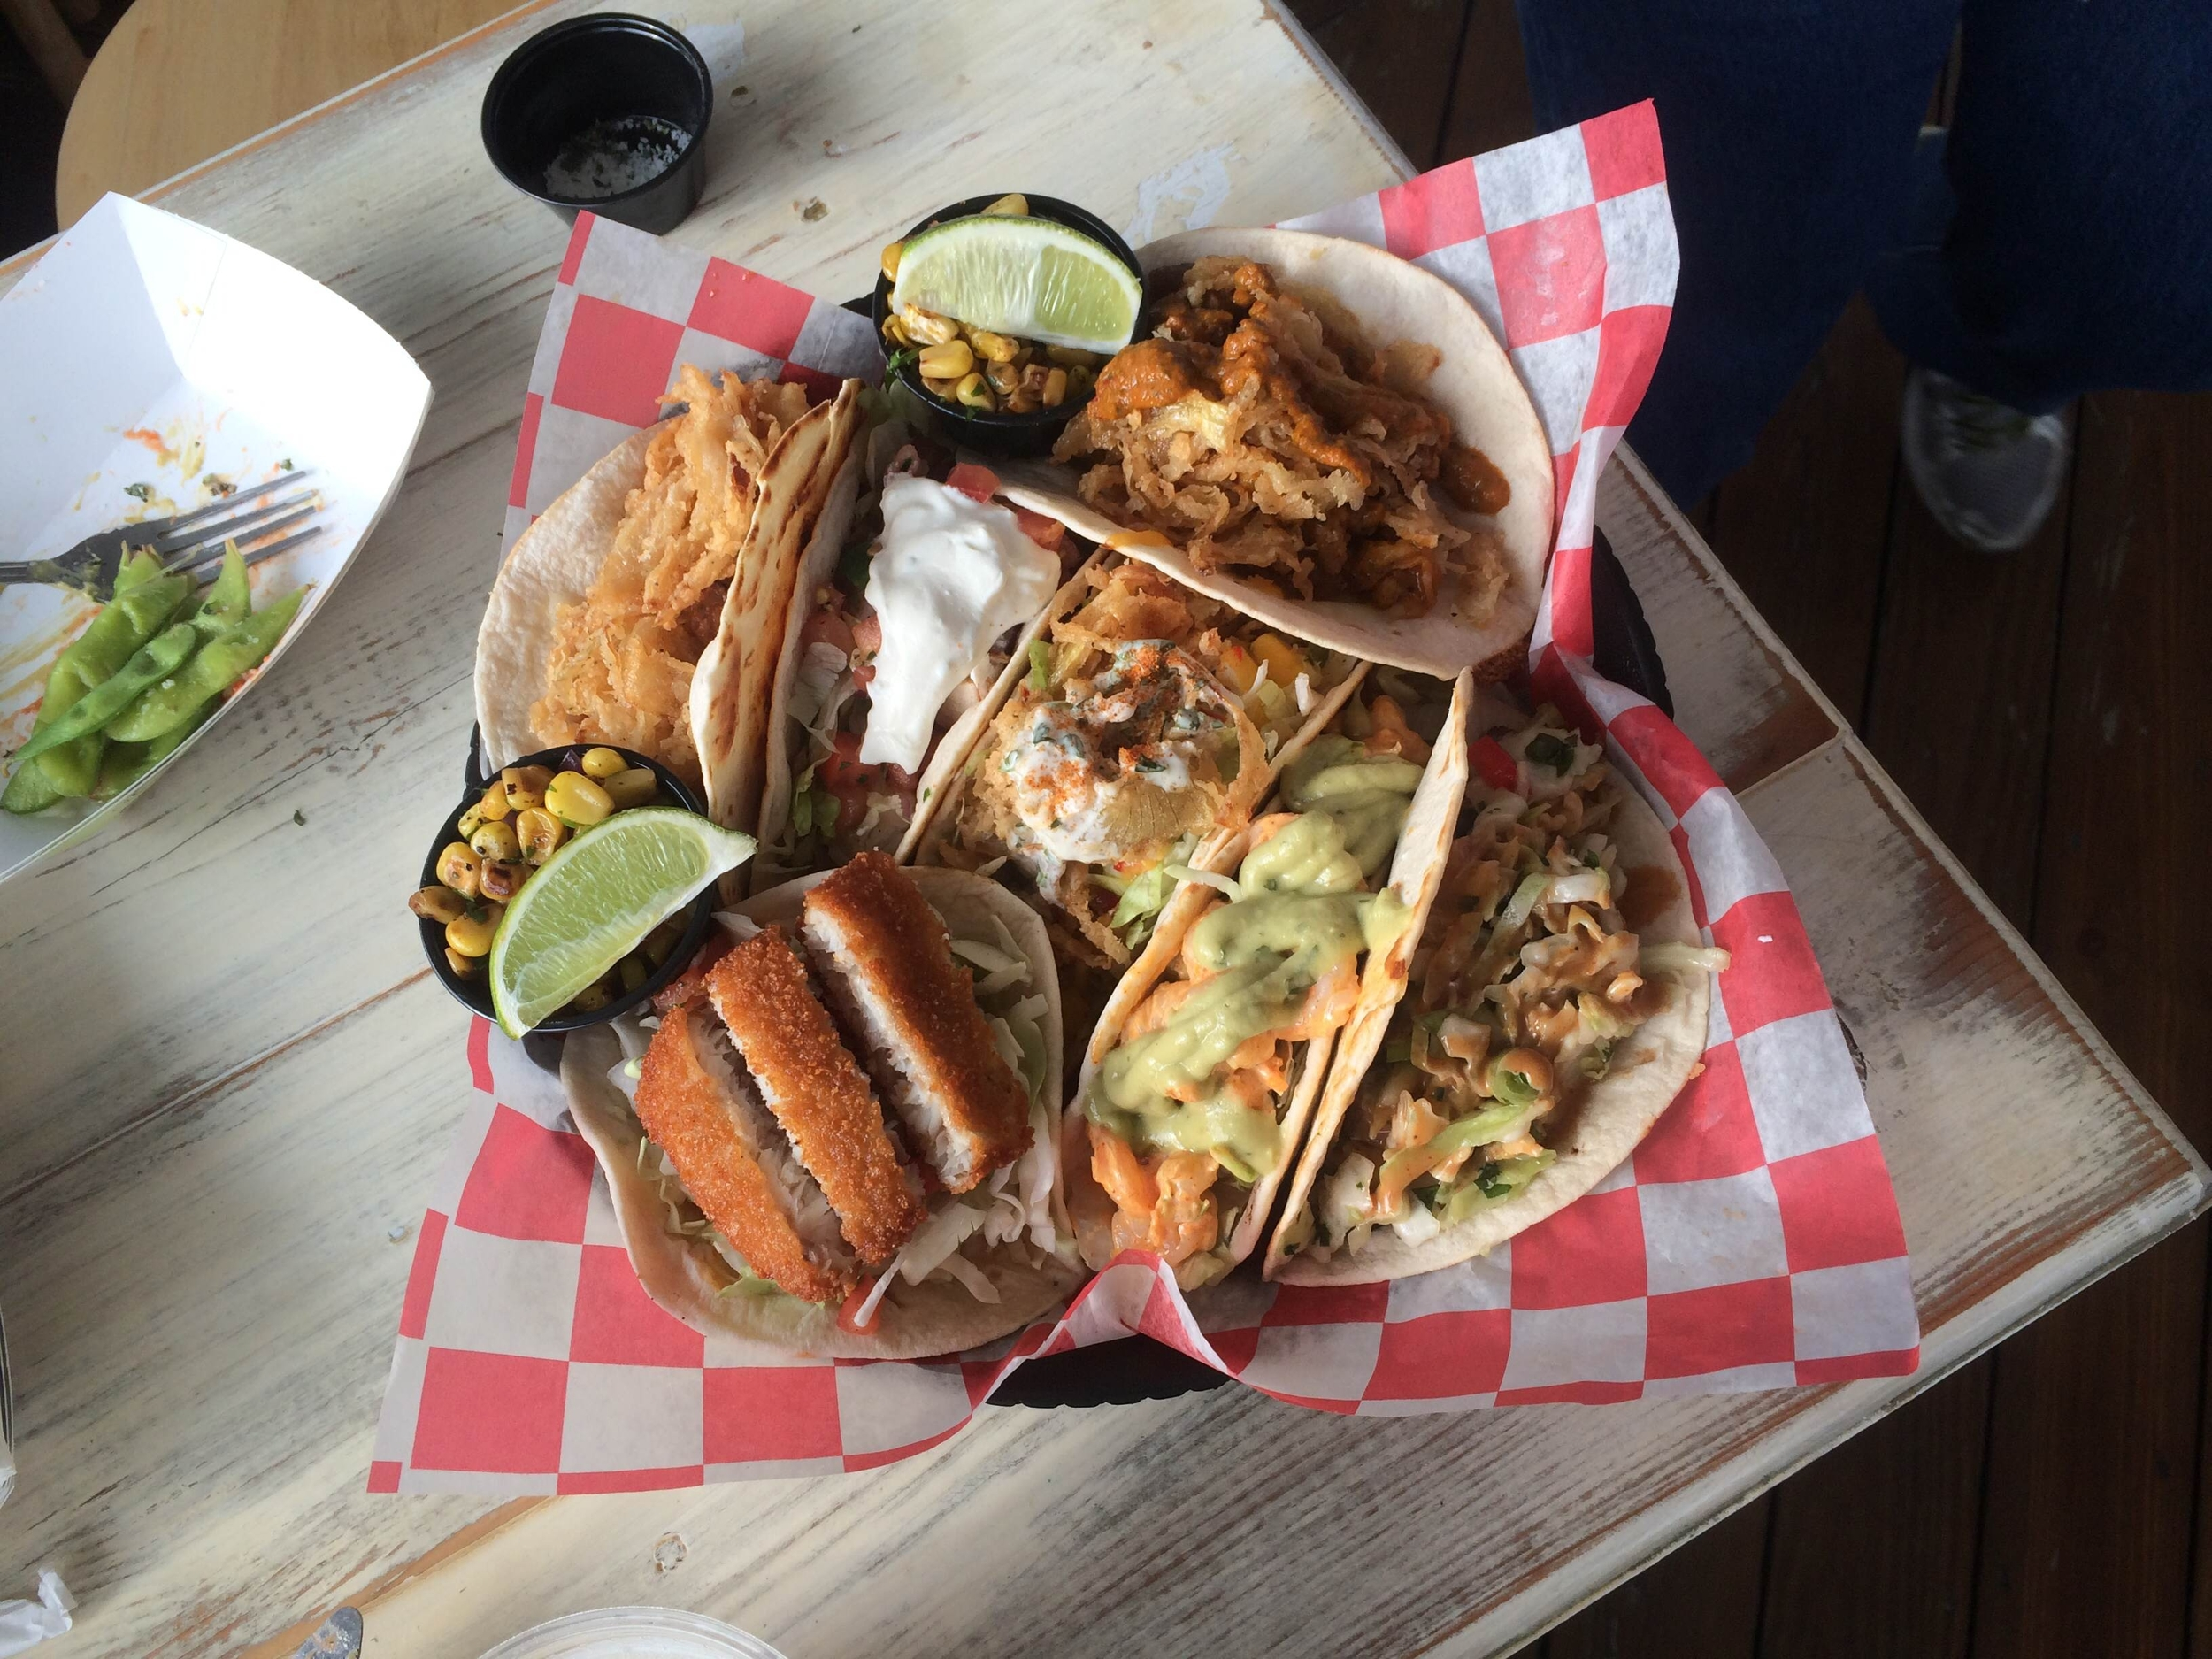 Taco Tuesday is back at Whales Tale in Northport. Guess how many tacos will be sold that day and win a $20 gift card to the 81 Fort Salonga Road café.